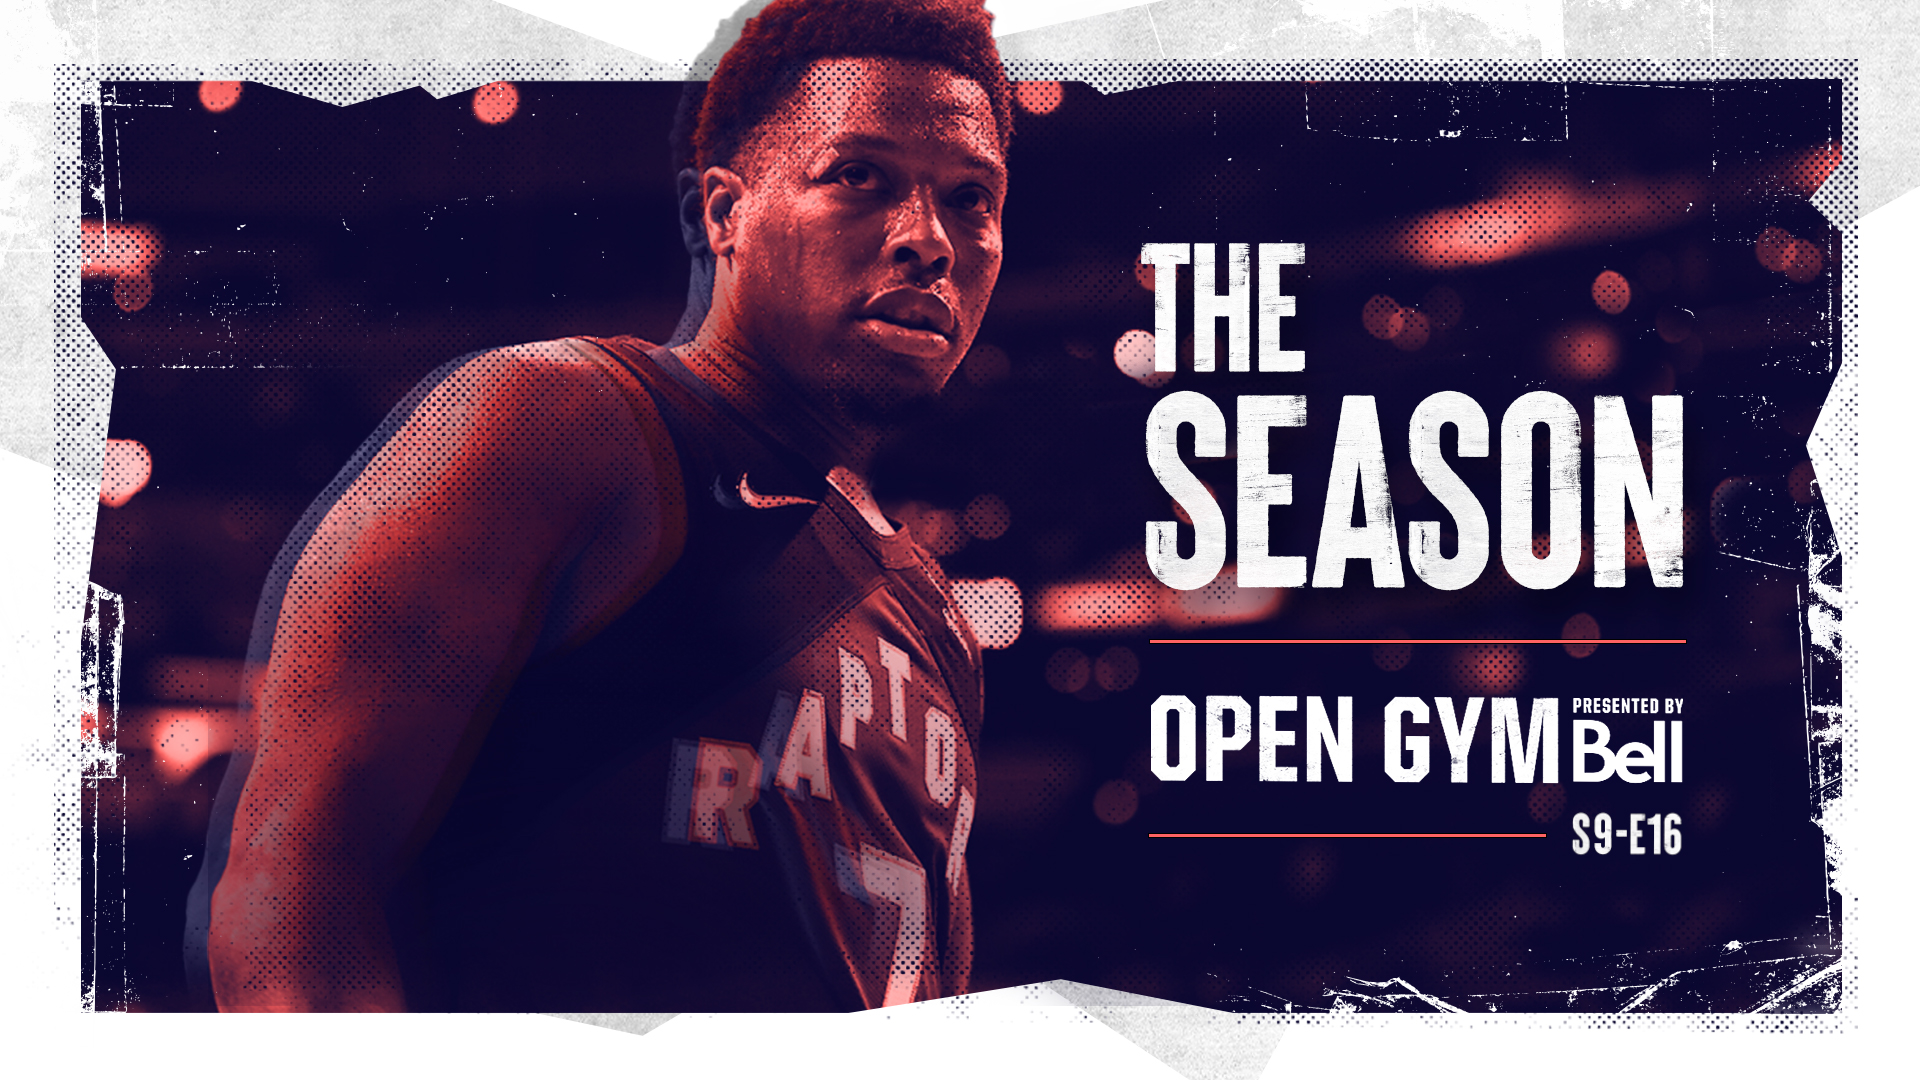 Open Gym pres. by Bell S9E16 | The Toronto Raptors look back on a season like no other